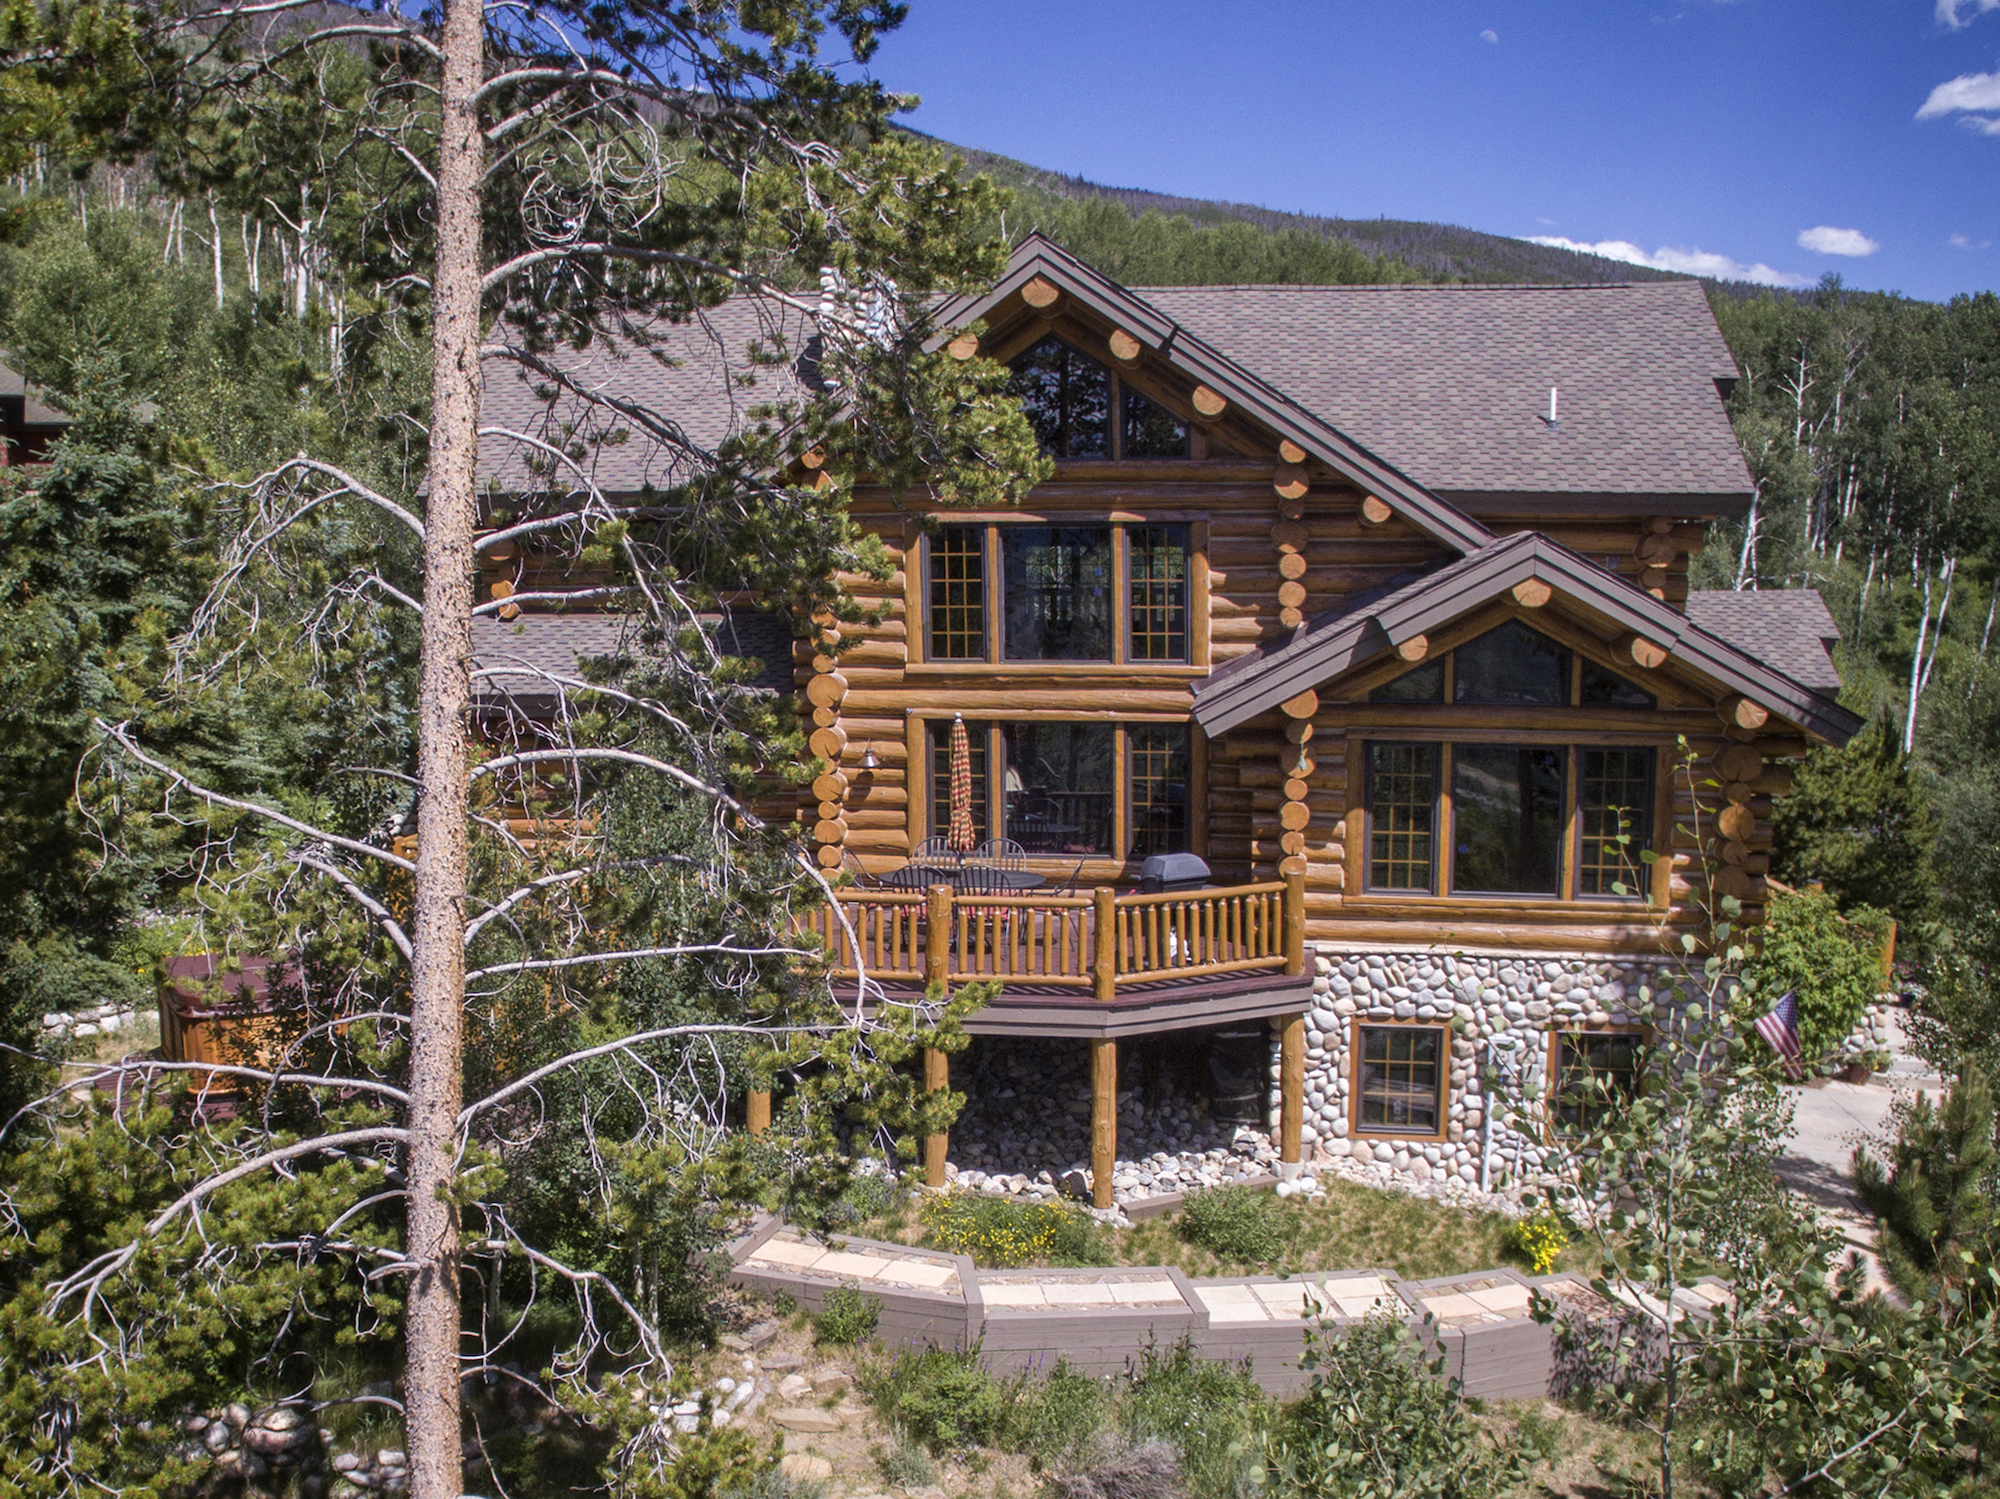 This log cabin located on 2191 Hamilton Creek Road in Silverthorne is currently listed through O'Brien & Associates Real Estate Inc., for $1,175,000.